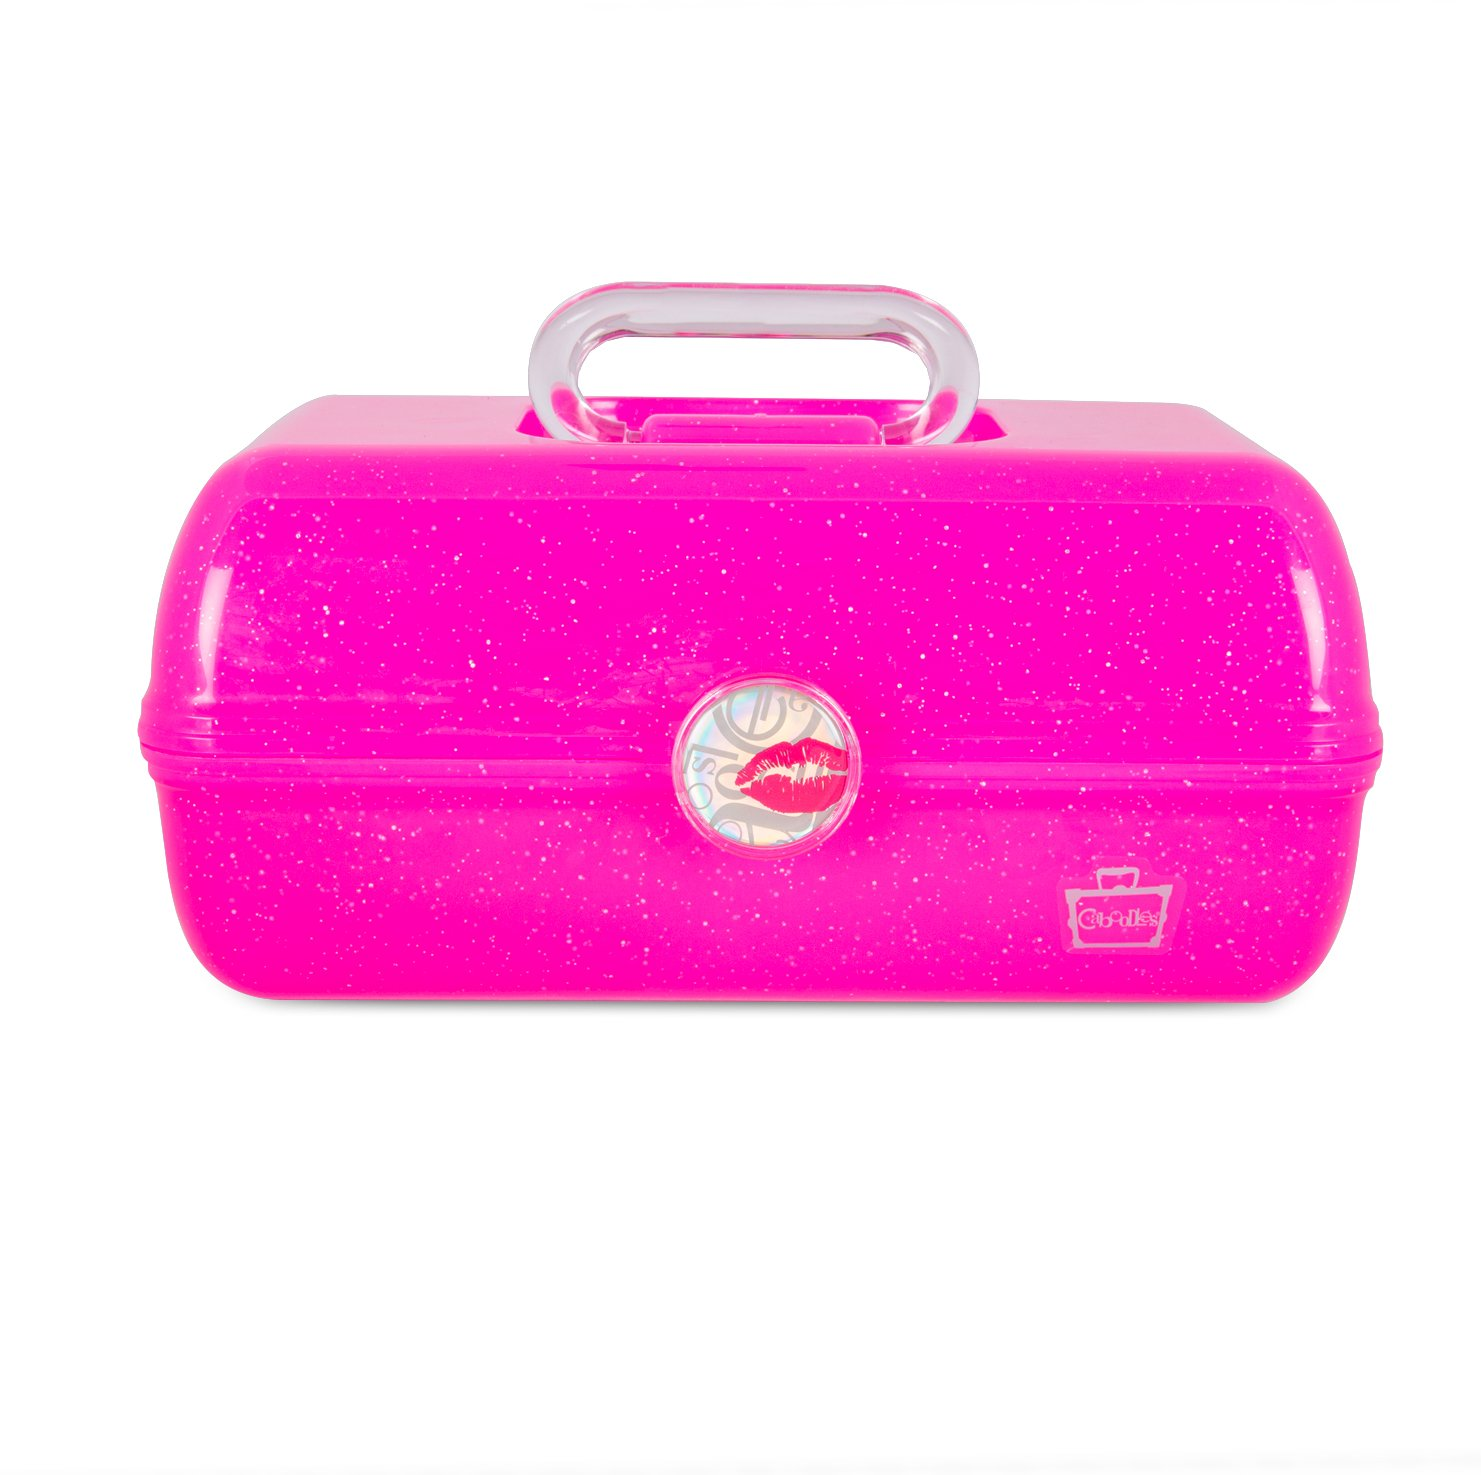 Caboodles On The Go Girl Classic Case, Pink Sparkle, 2.4 Pound by Caboodles (Image #4)